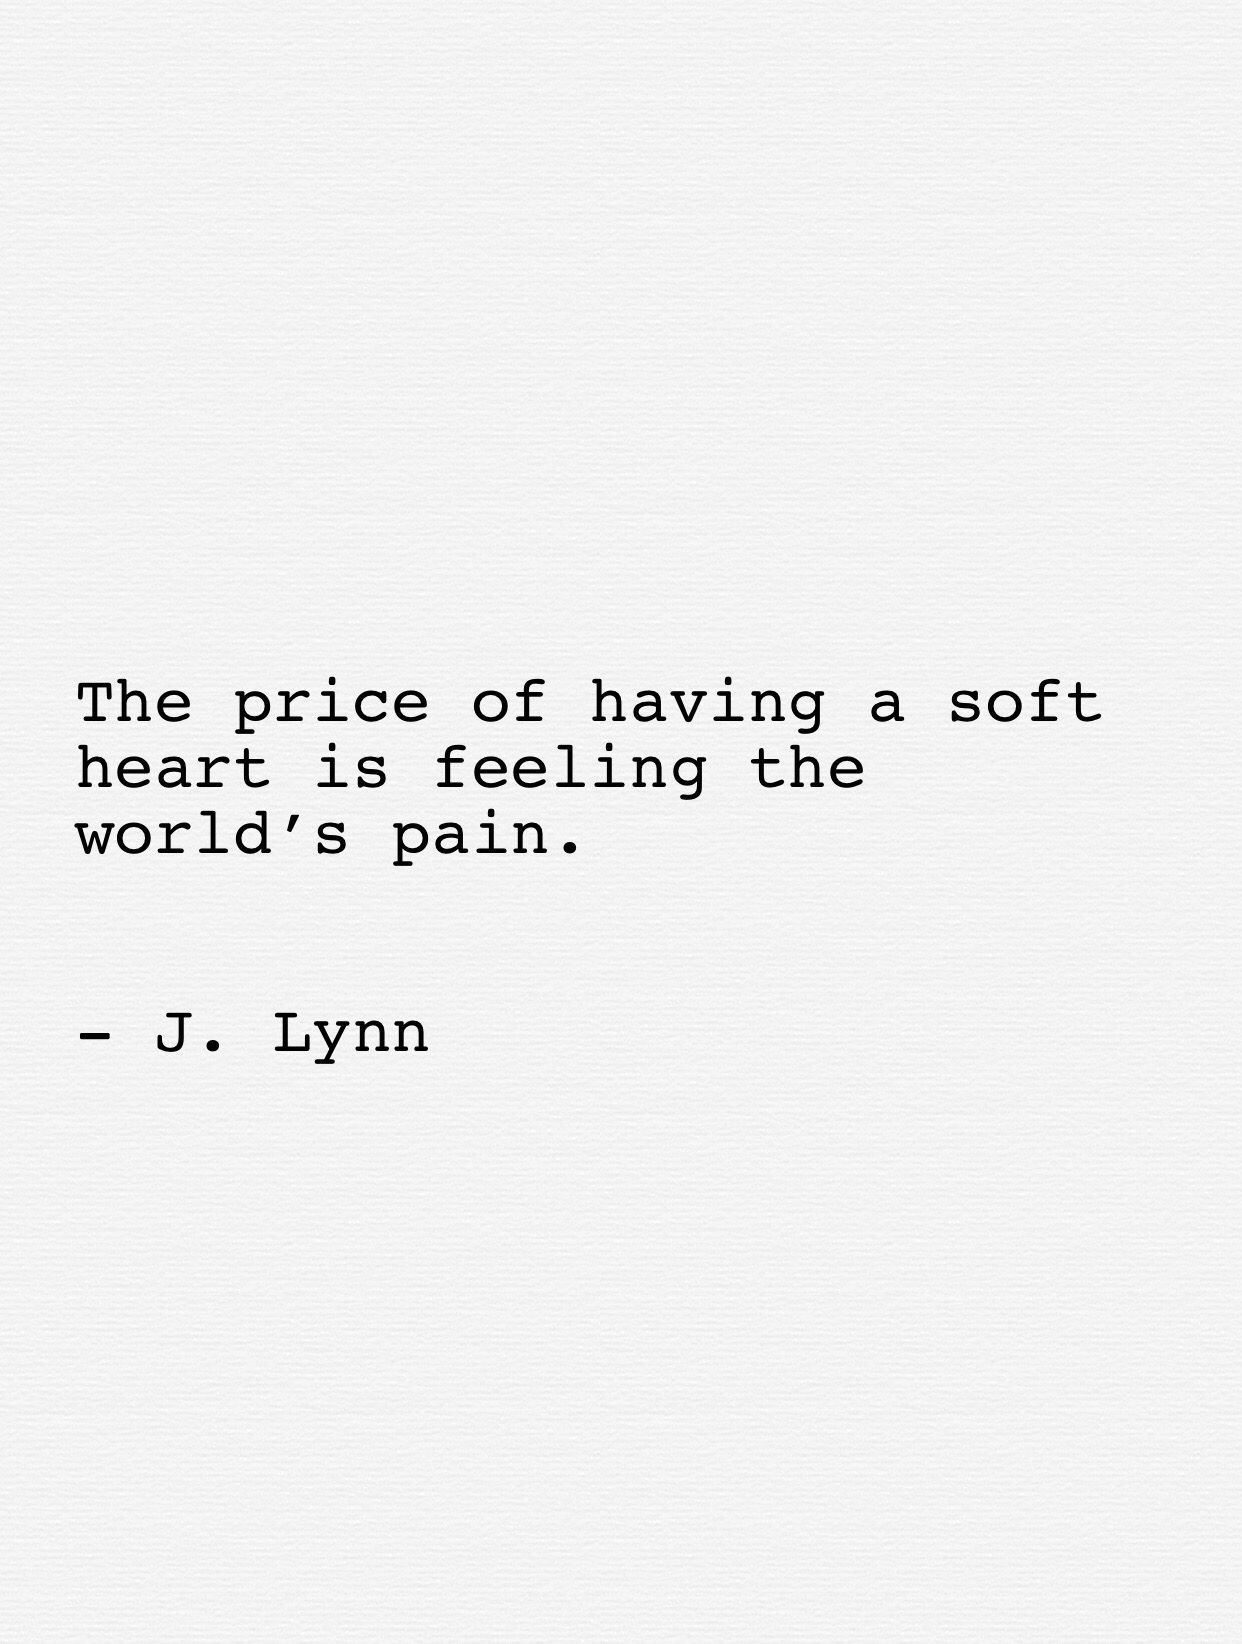 A soft heart. #youareloved #beauty #quotes #poetry #poetrybyjlynn